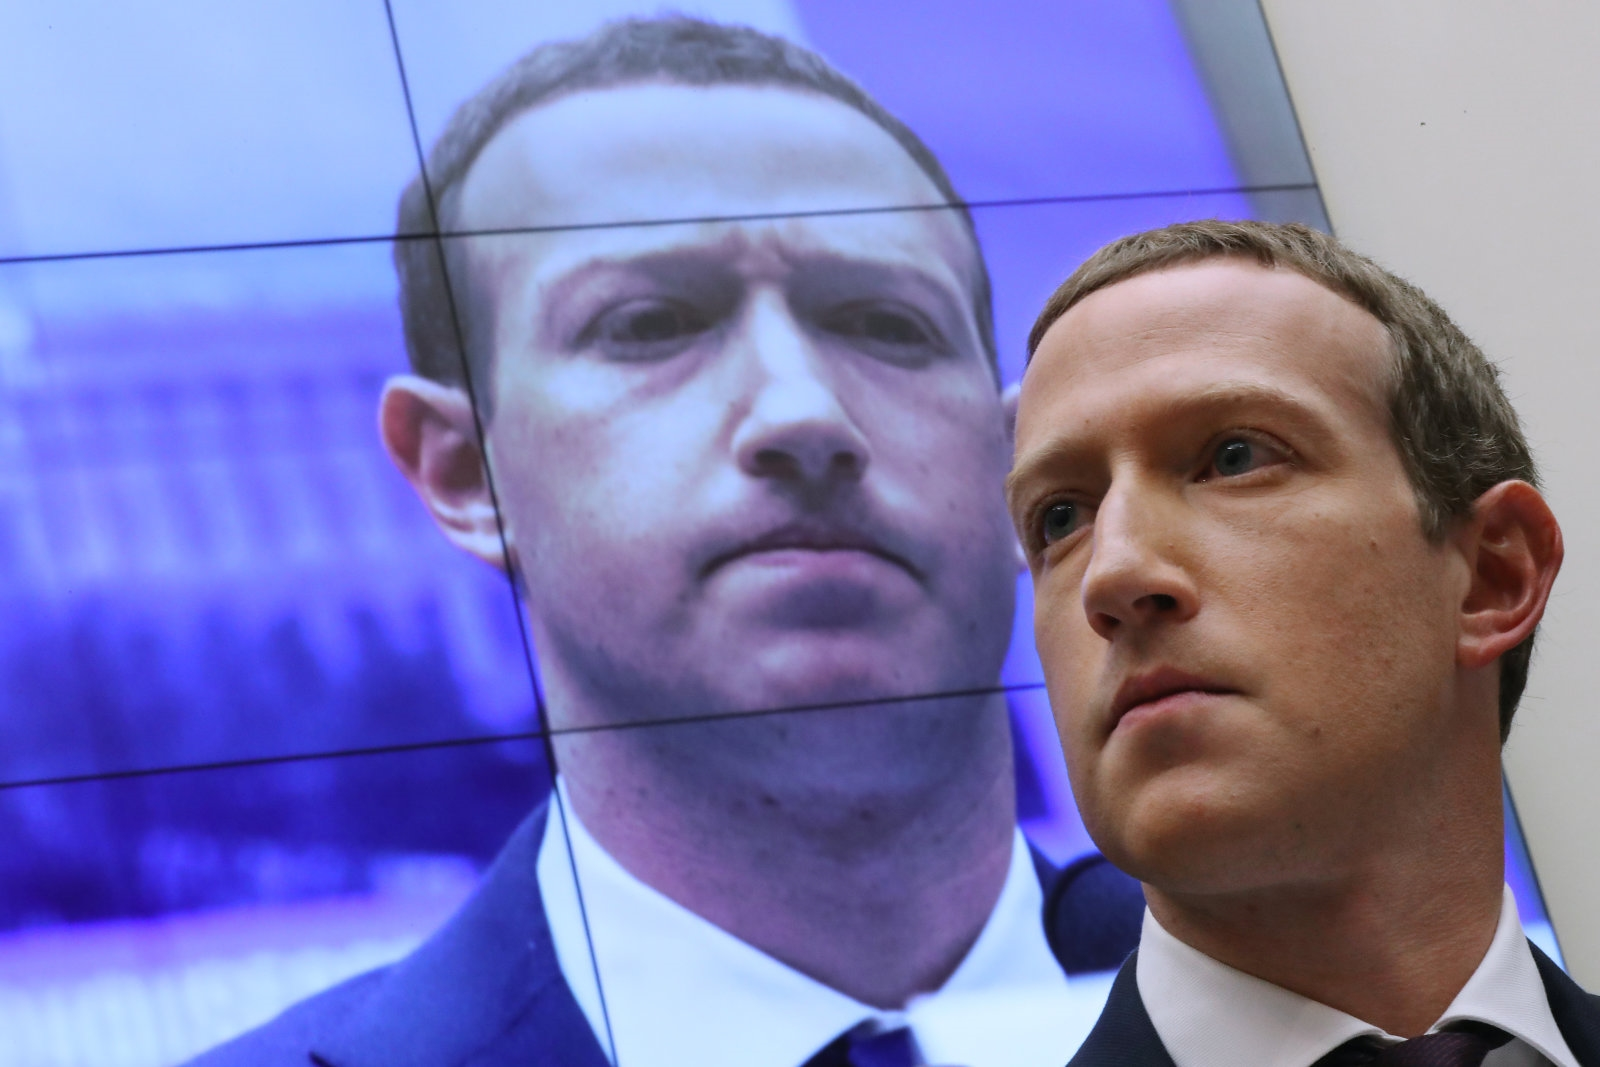 Facebook's new oversight board expects to hear cases this summer | DeviceDaily.com